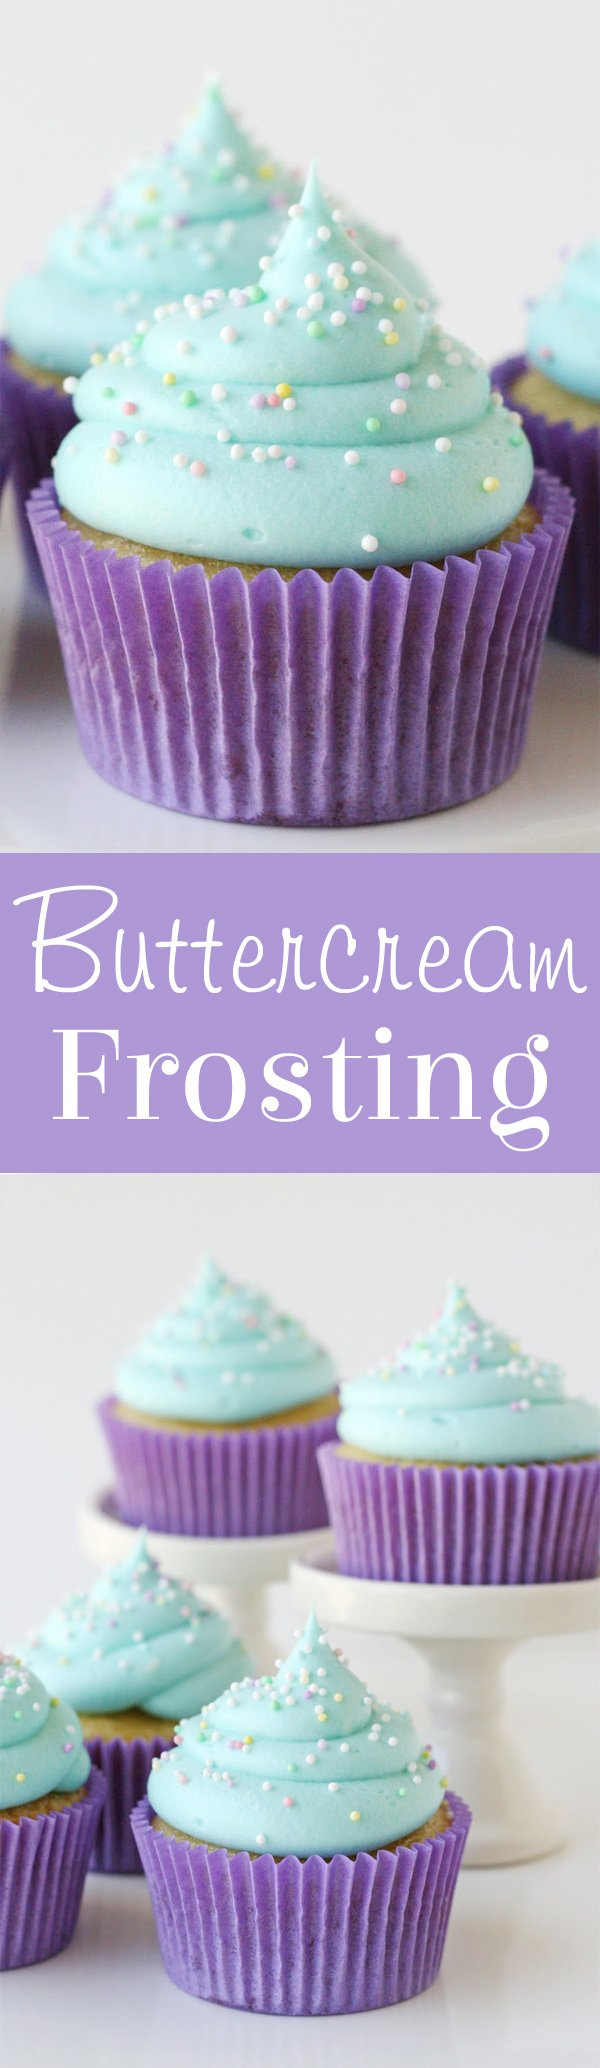 Simply PERFECT buttercream frosting! You'll use this recipe again and again!